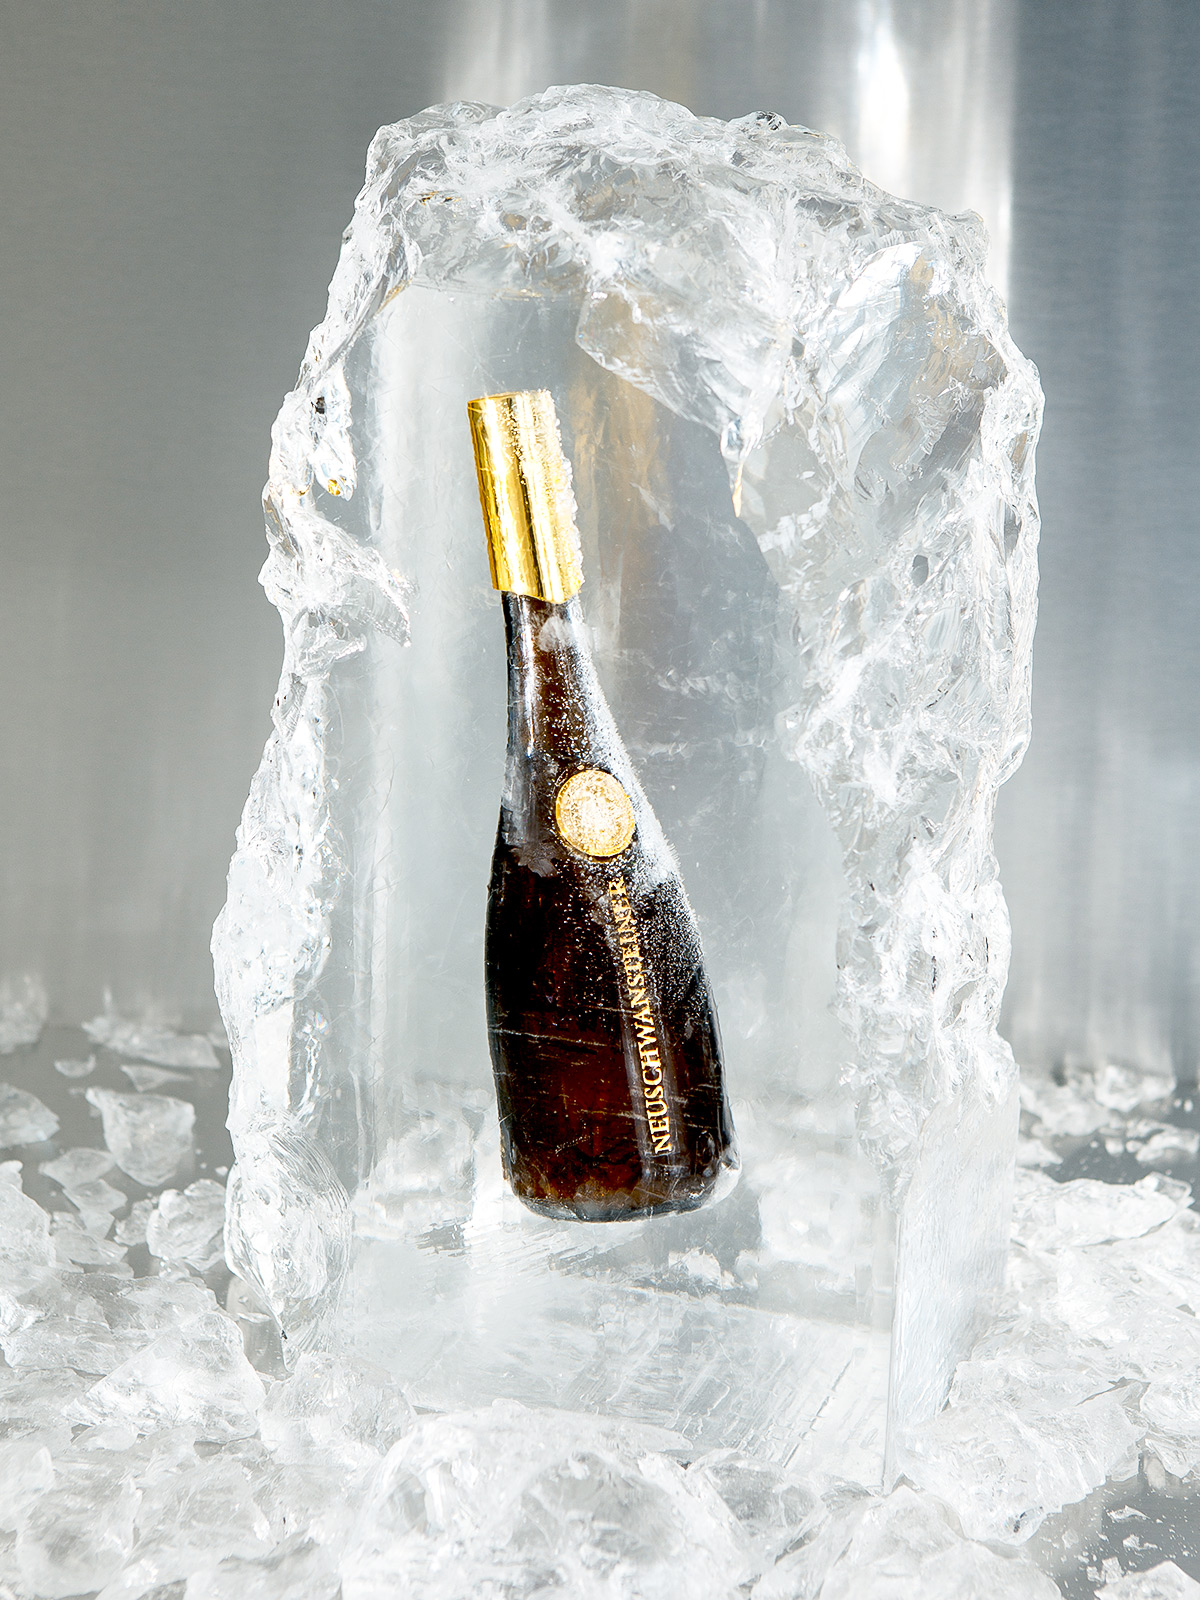 perfect-summer-chilled-neuschwansteiner-in-ice-by-Guenter-stoemmer-01